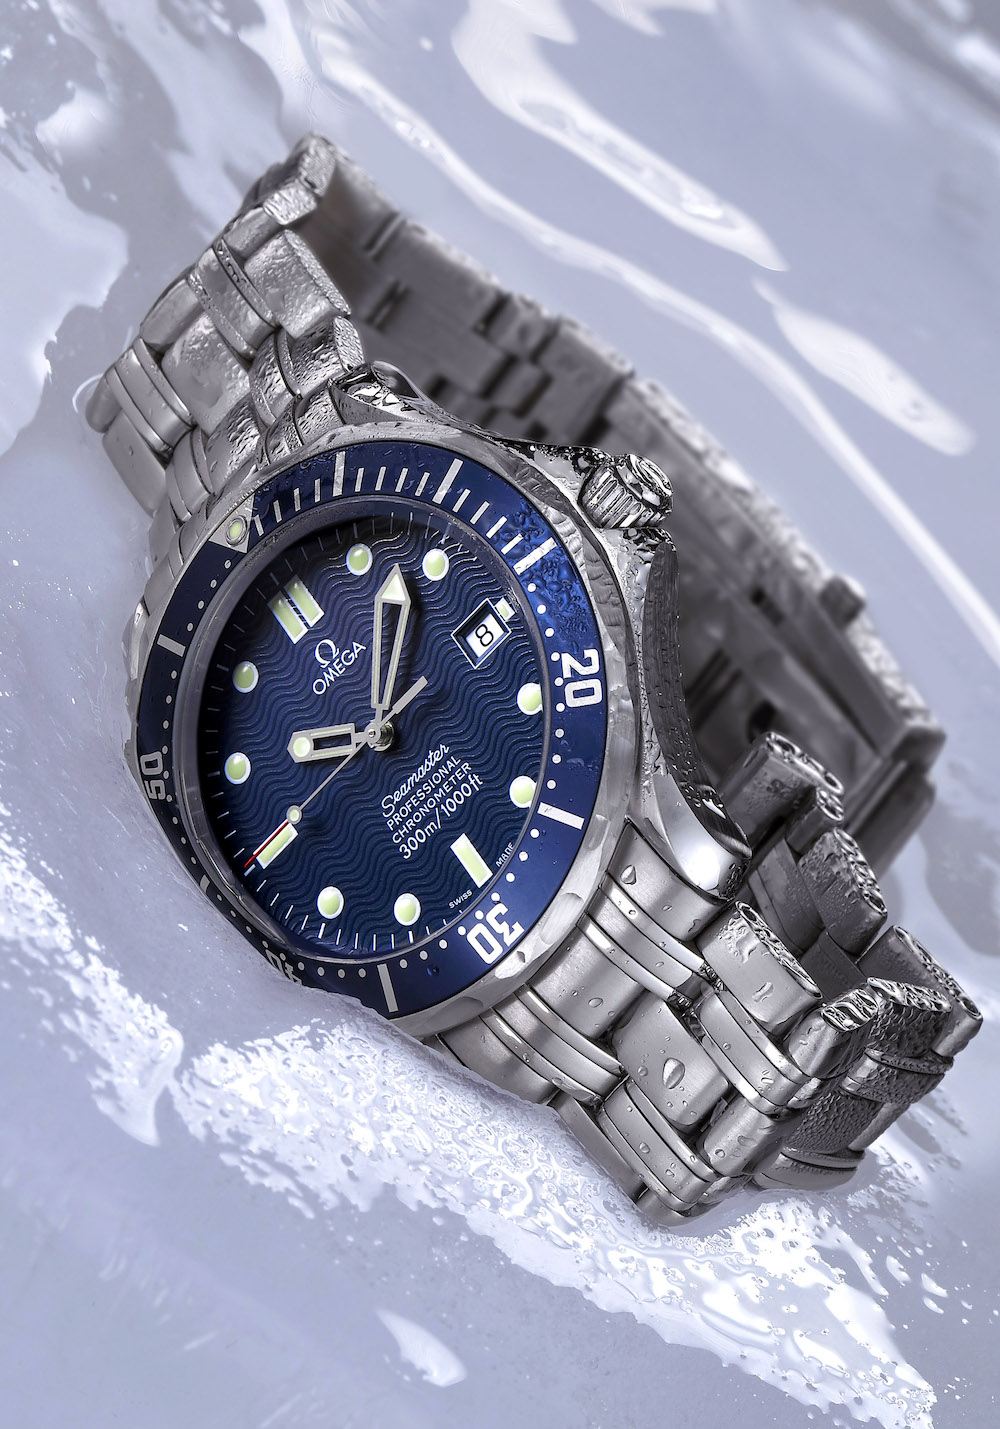 Omega Seamaster Professional from Die Another Day